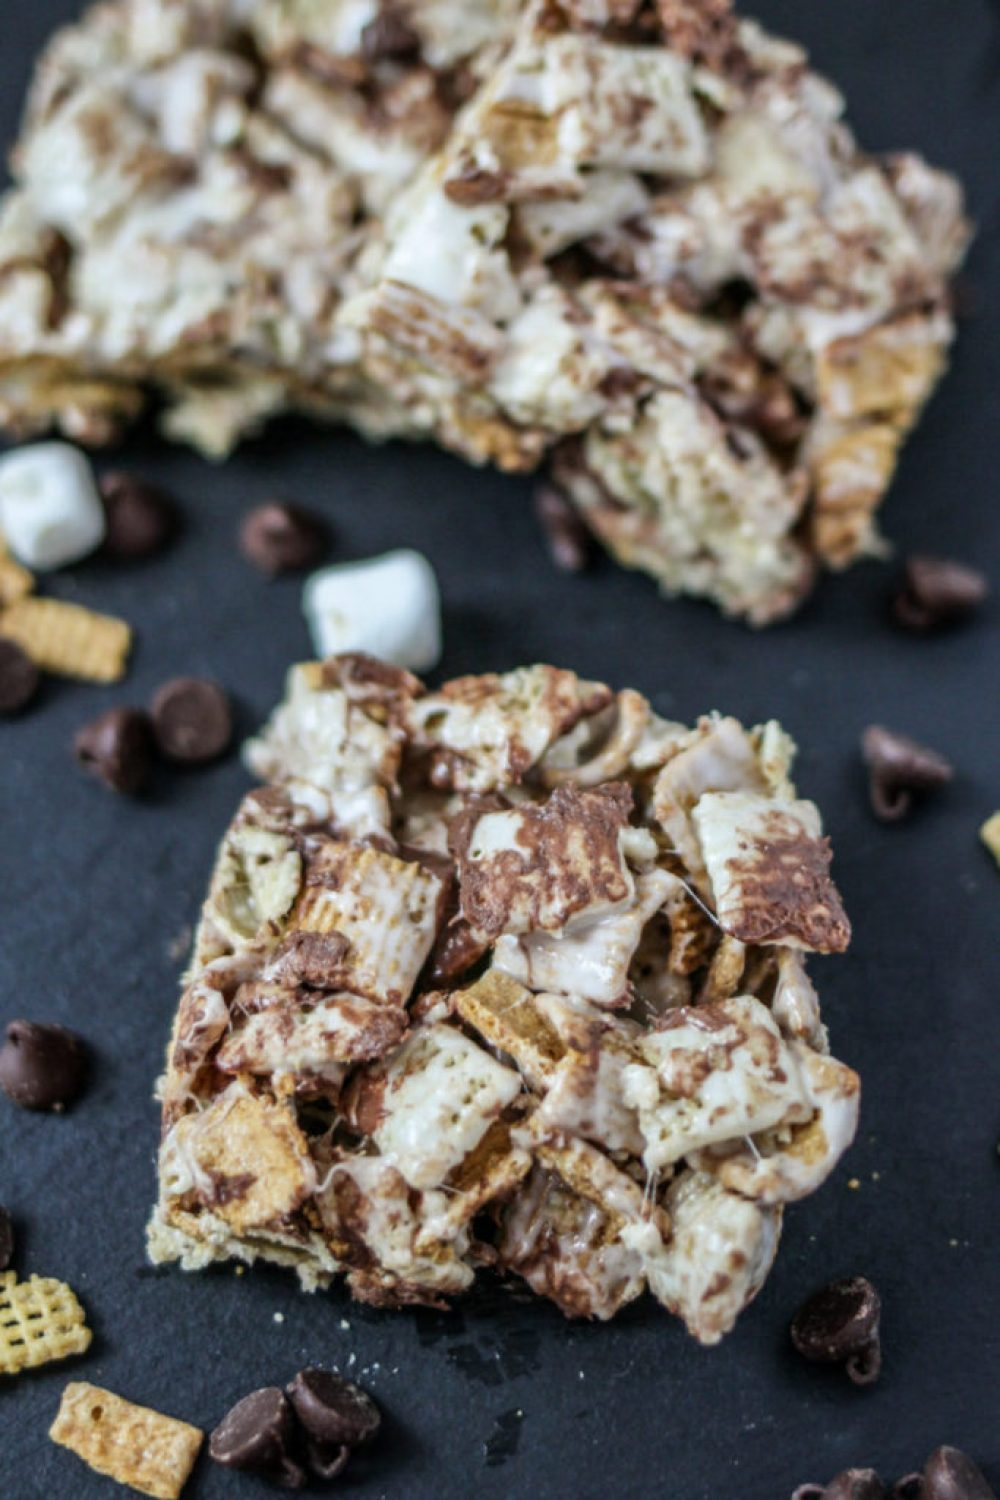 LiliesandLoafers - S'mores Camp Fire Treats